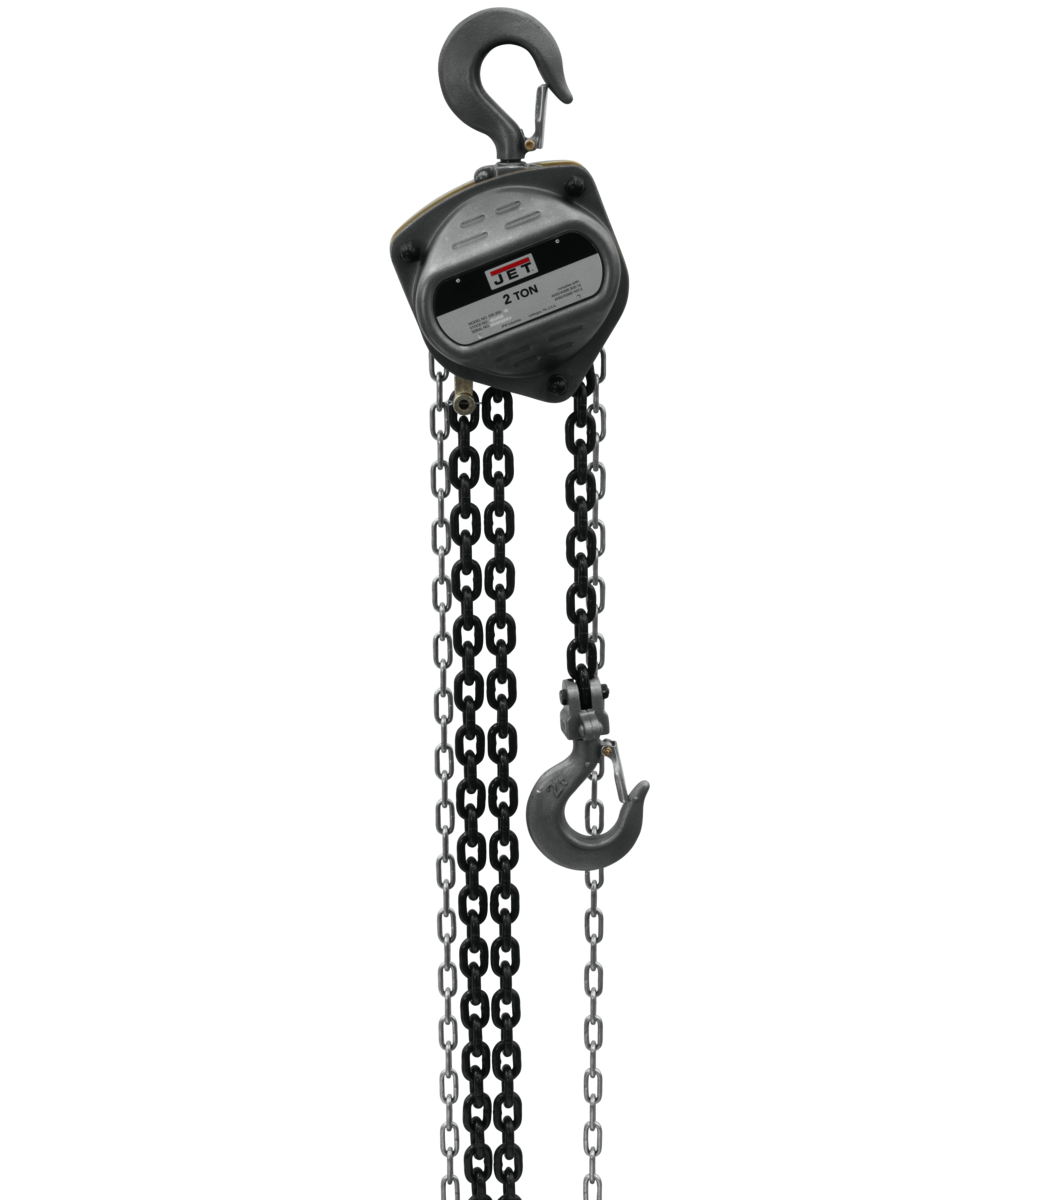 S90-200-30, 2-Ton Hand Chain Hoist With 30' Lift